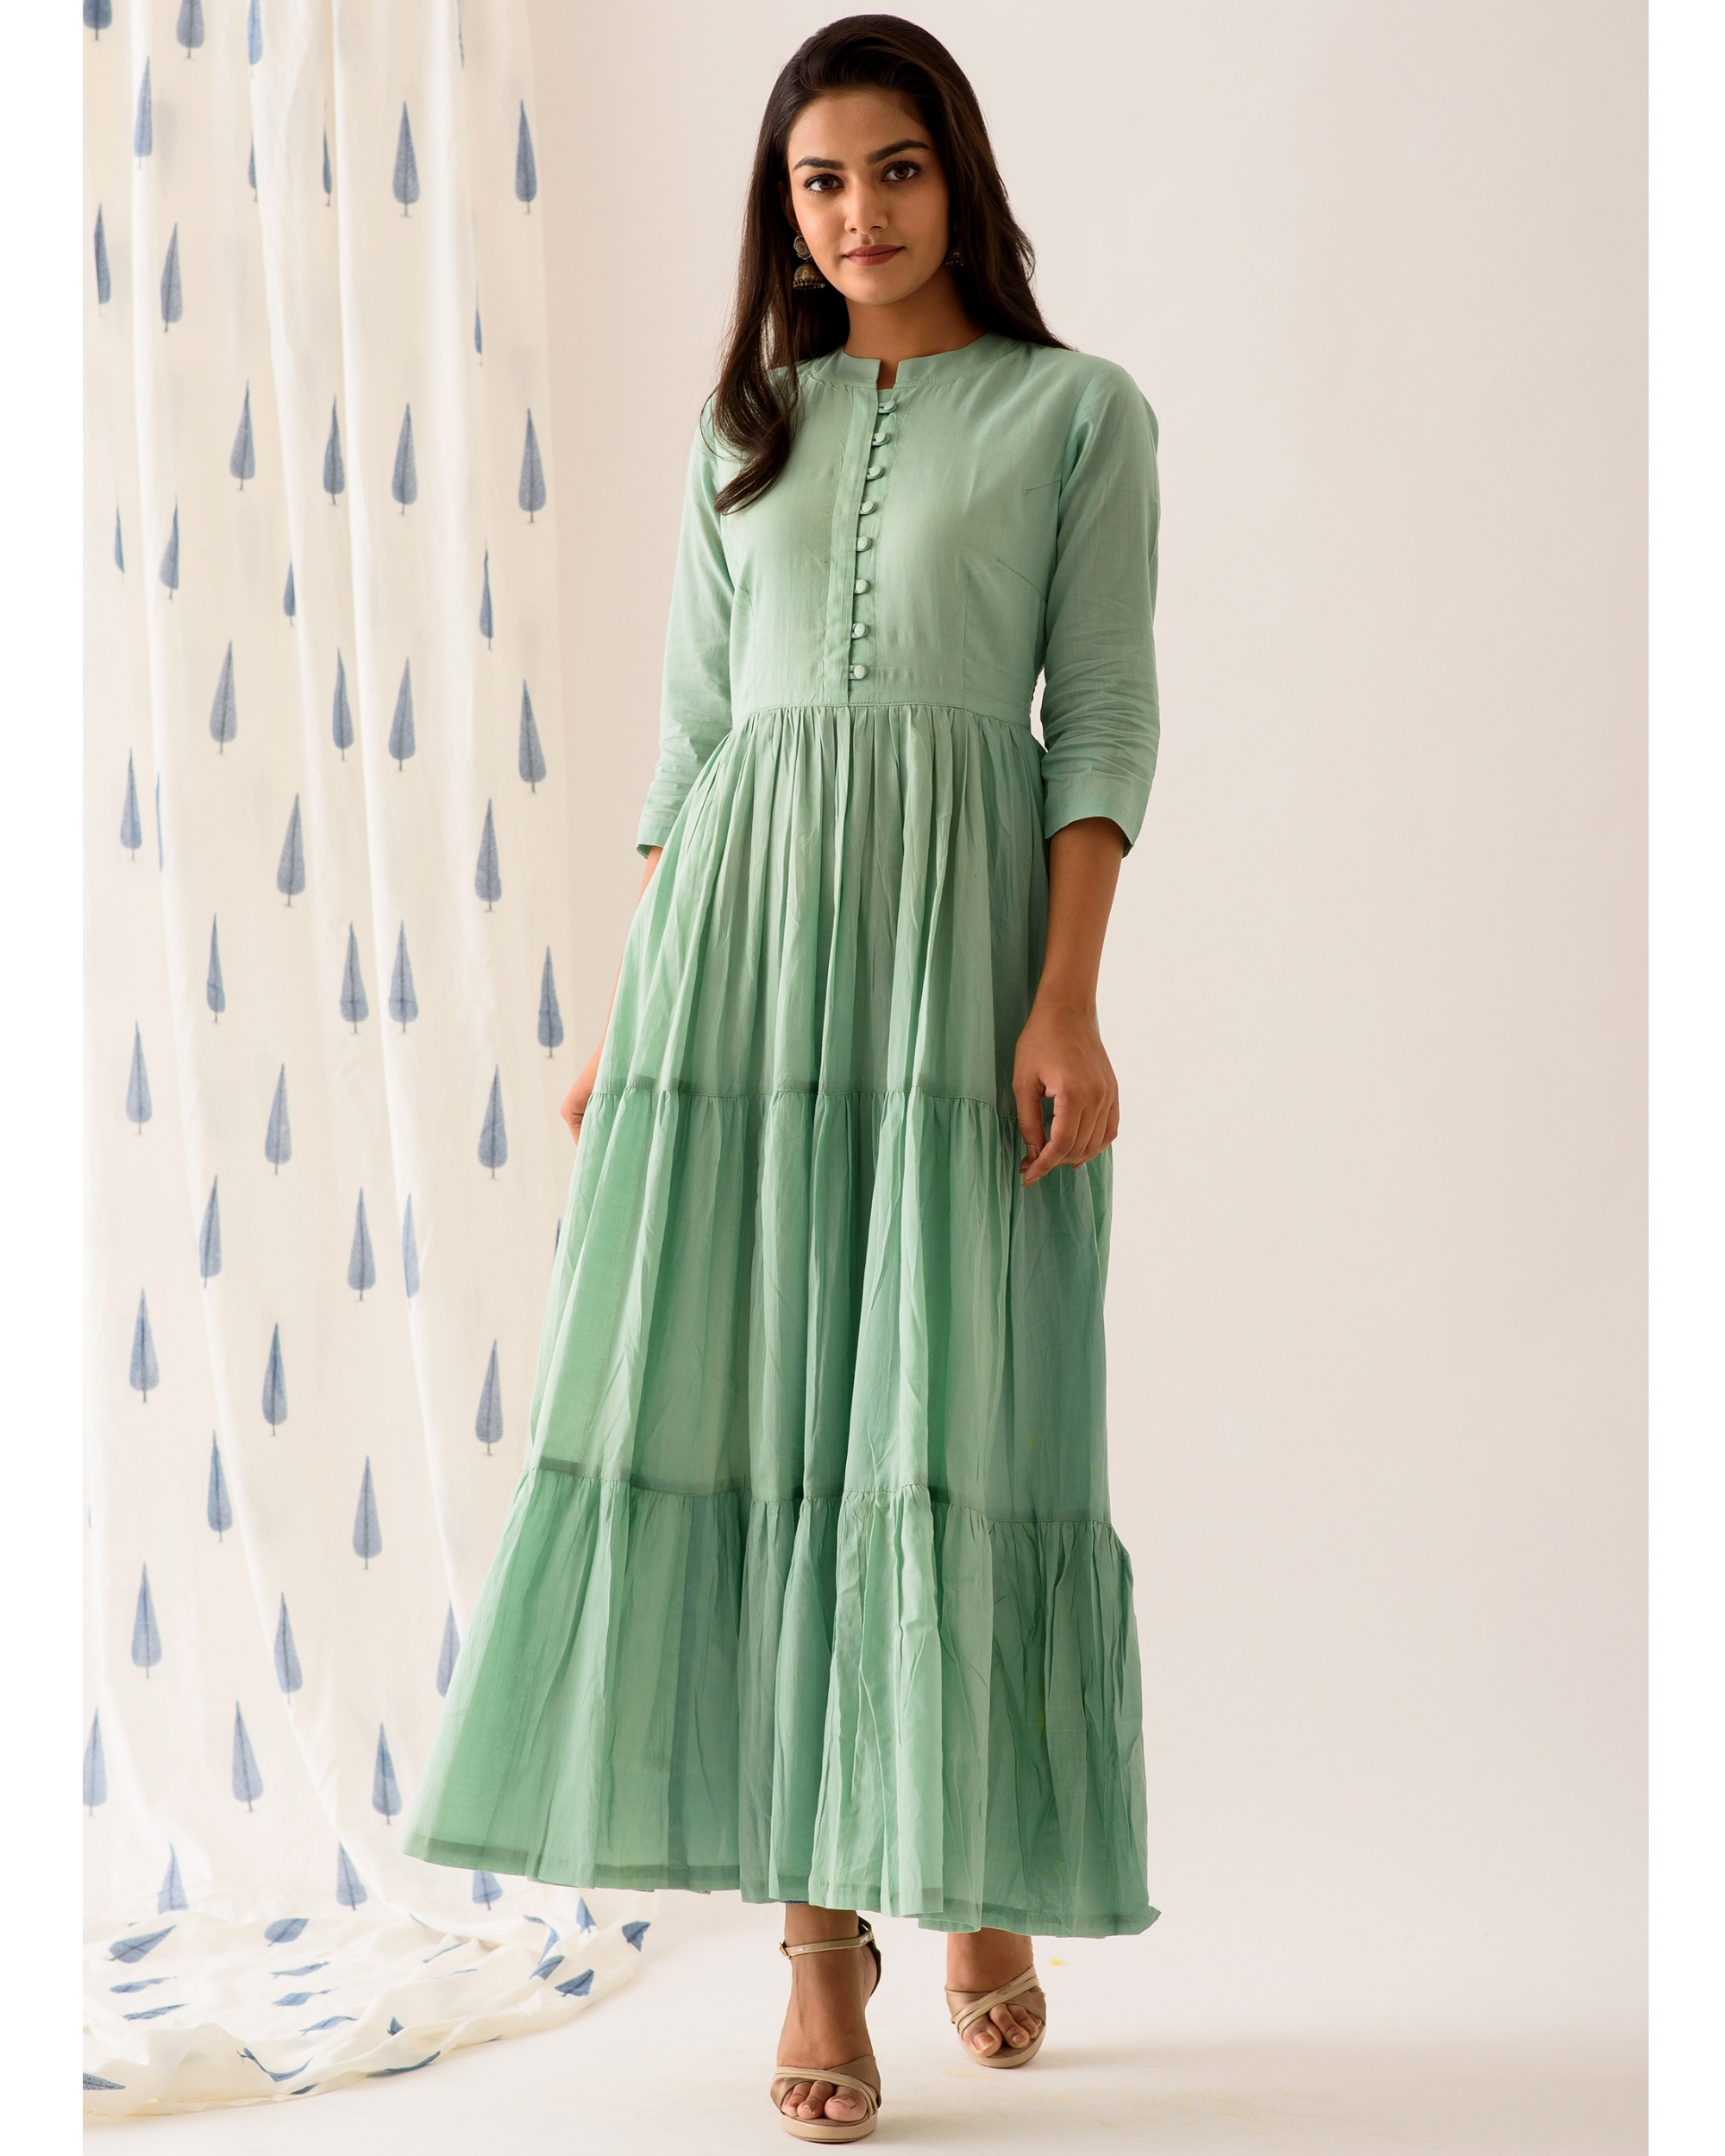 Mint frilled anarkali dress